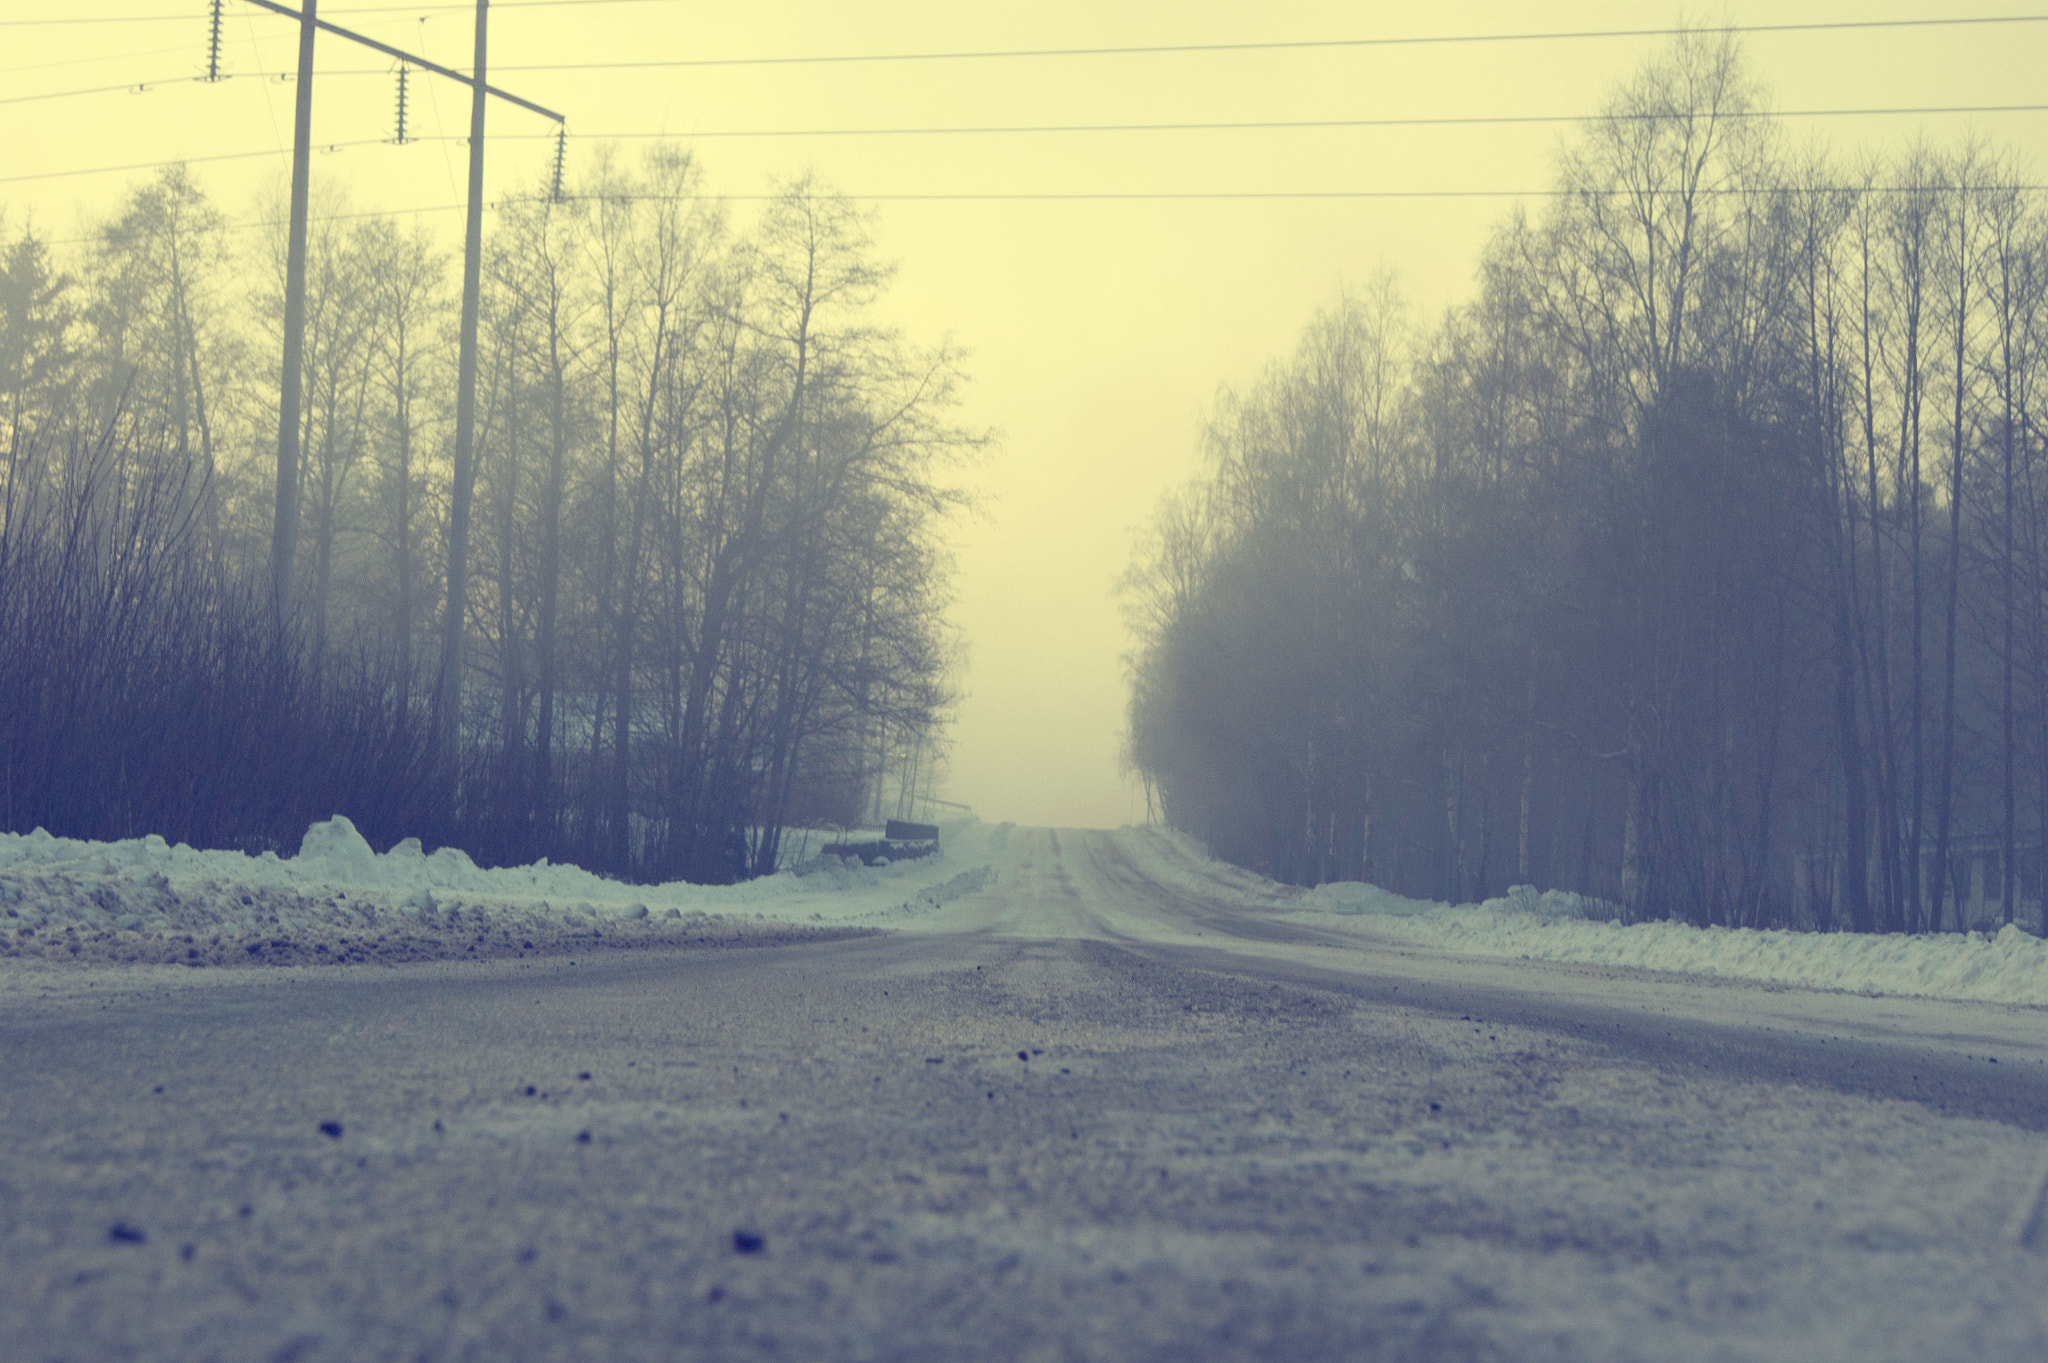 Photograph Misty Road. by Clautidia Waked on 500px